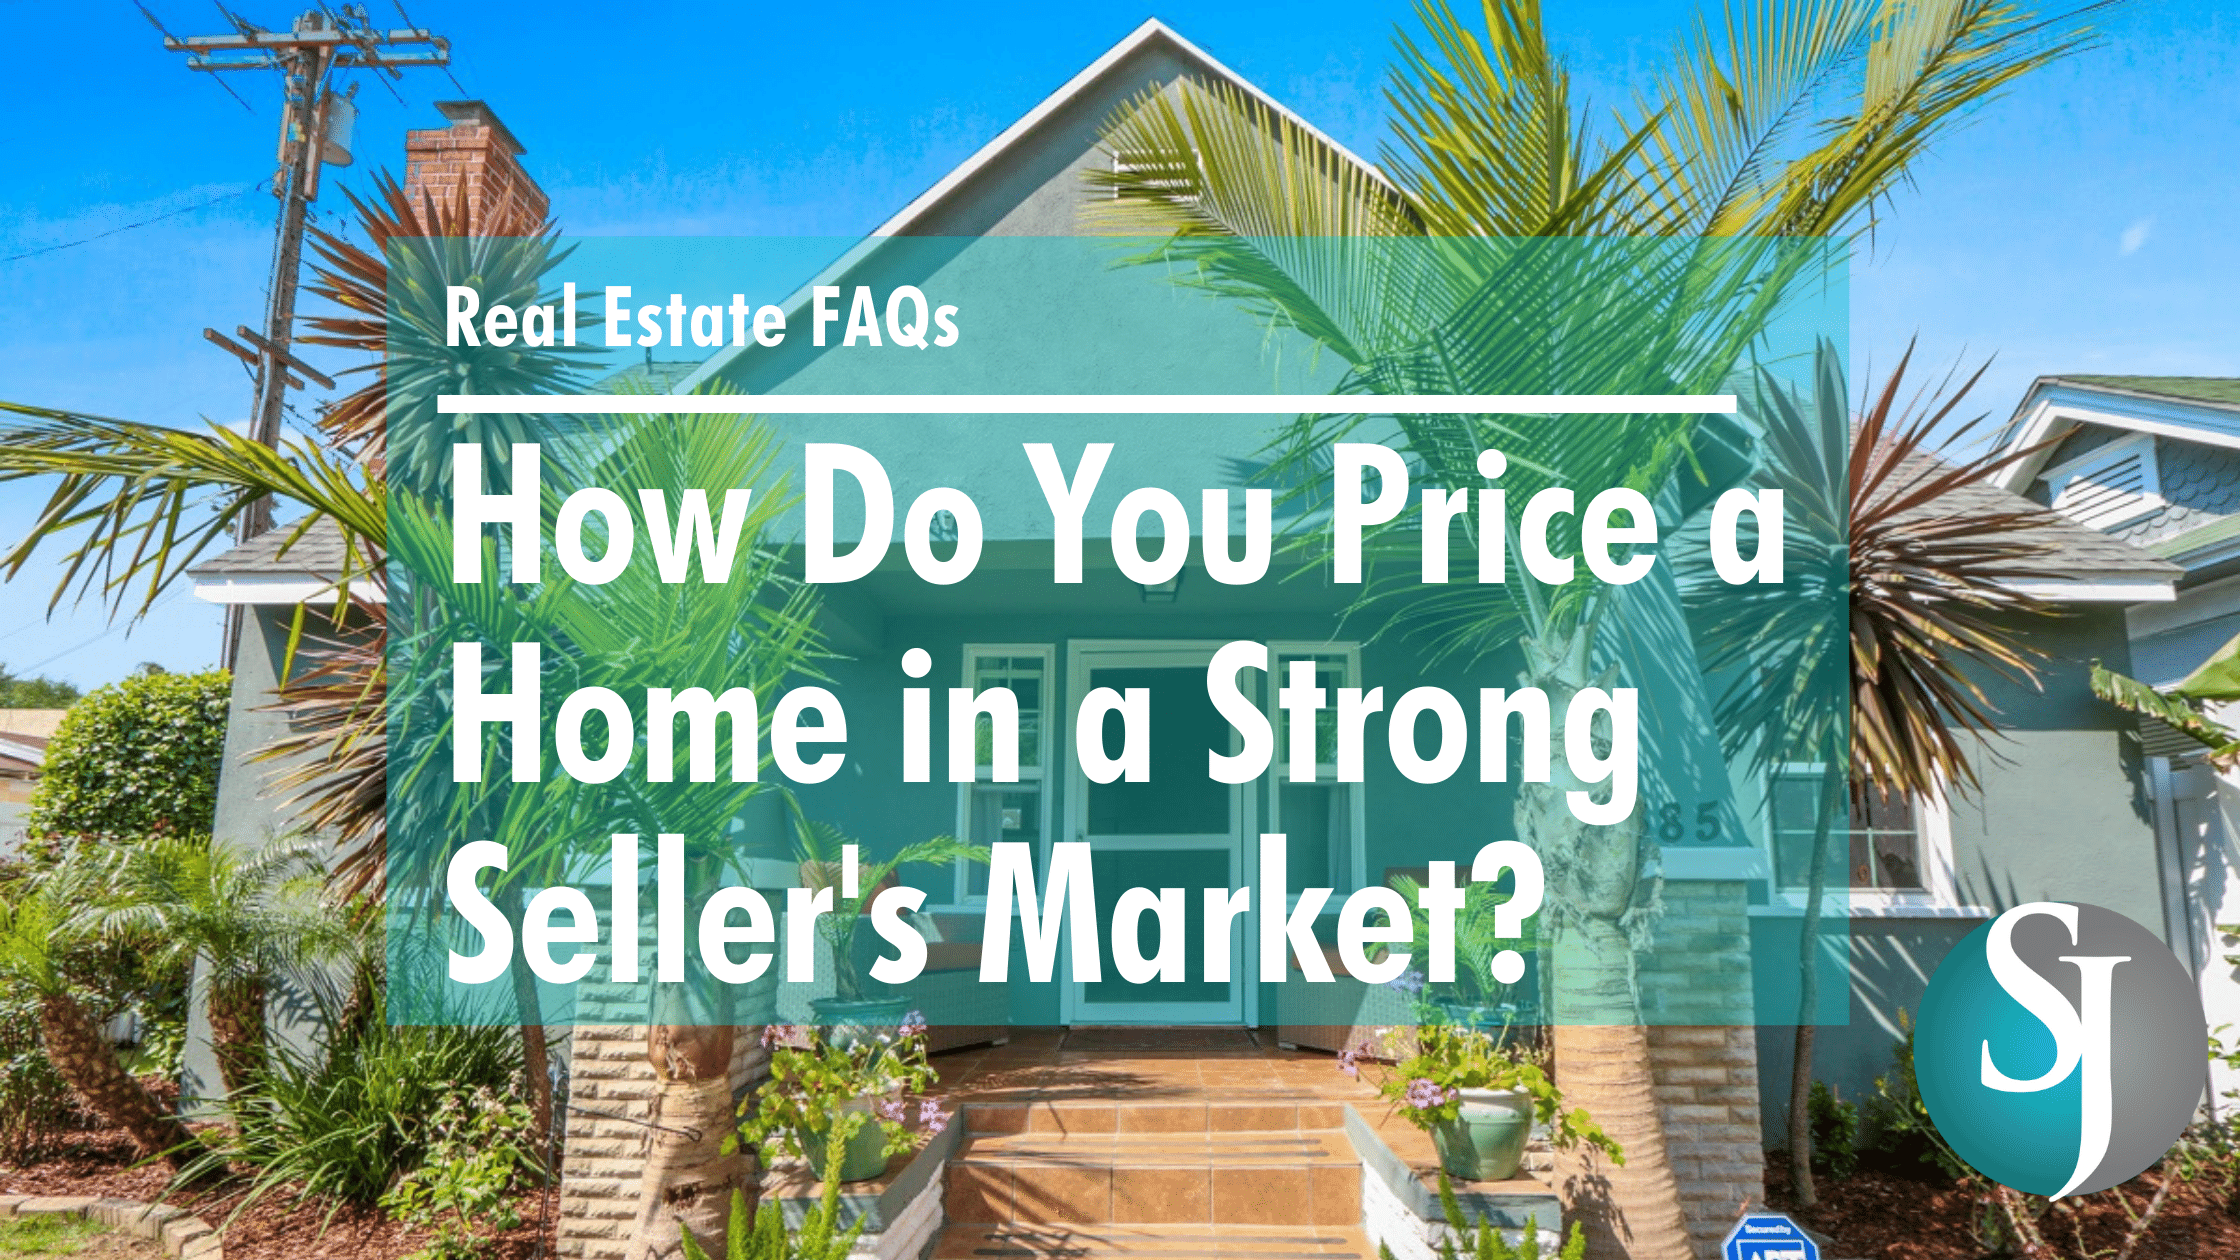 Pricing Strategy in a Seller's Market